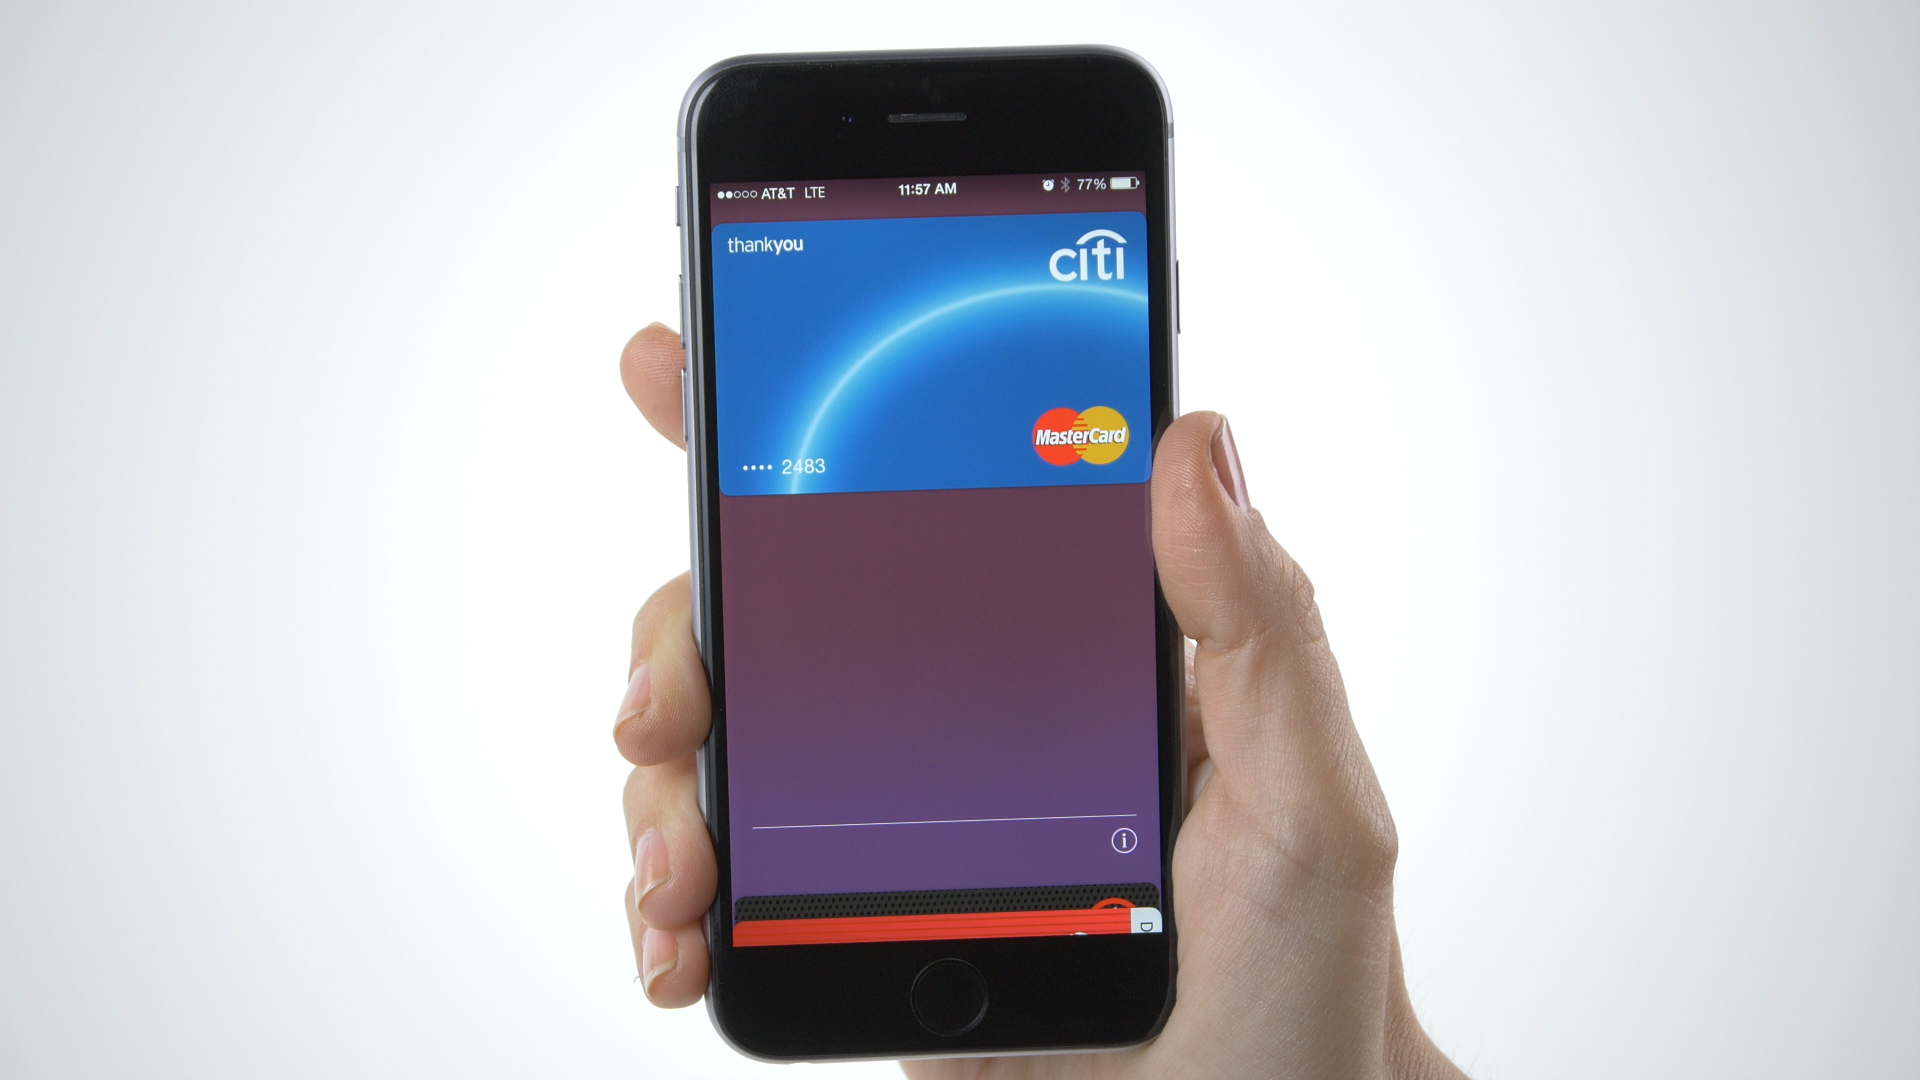 MasterCard Apple Pay - Citi Card